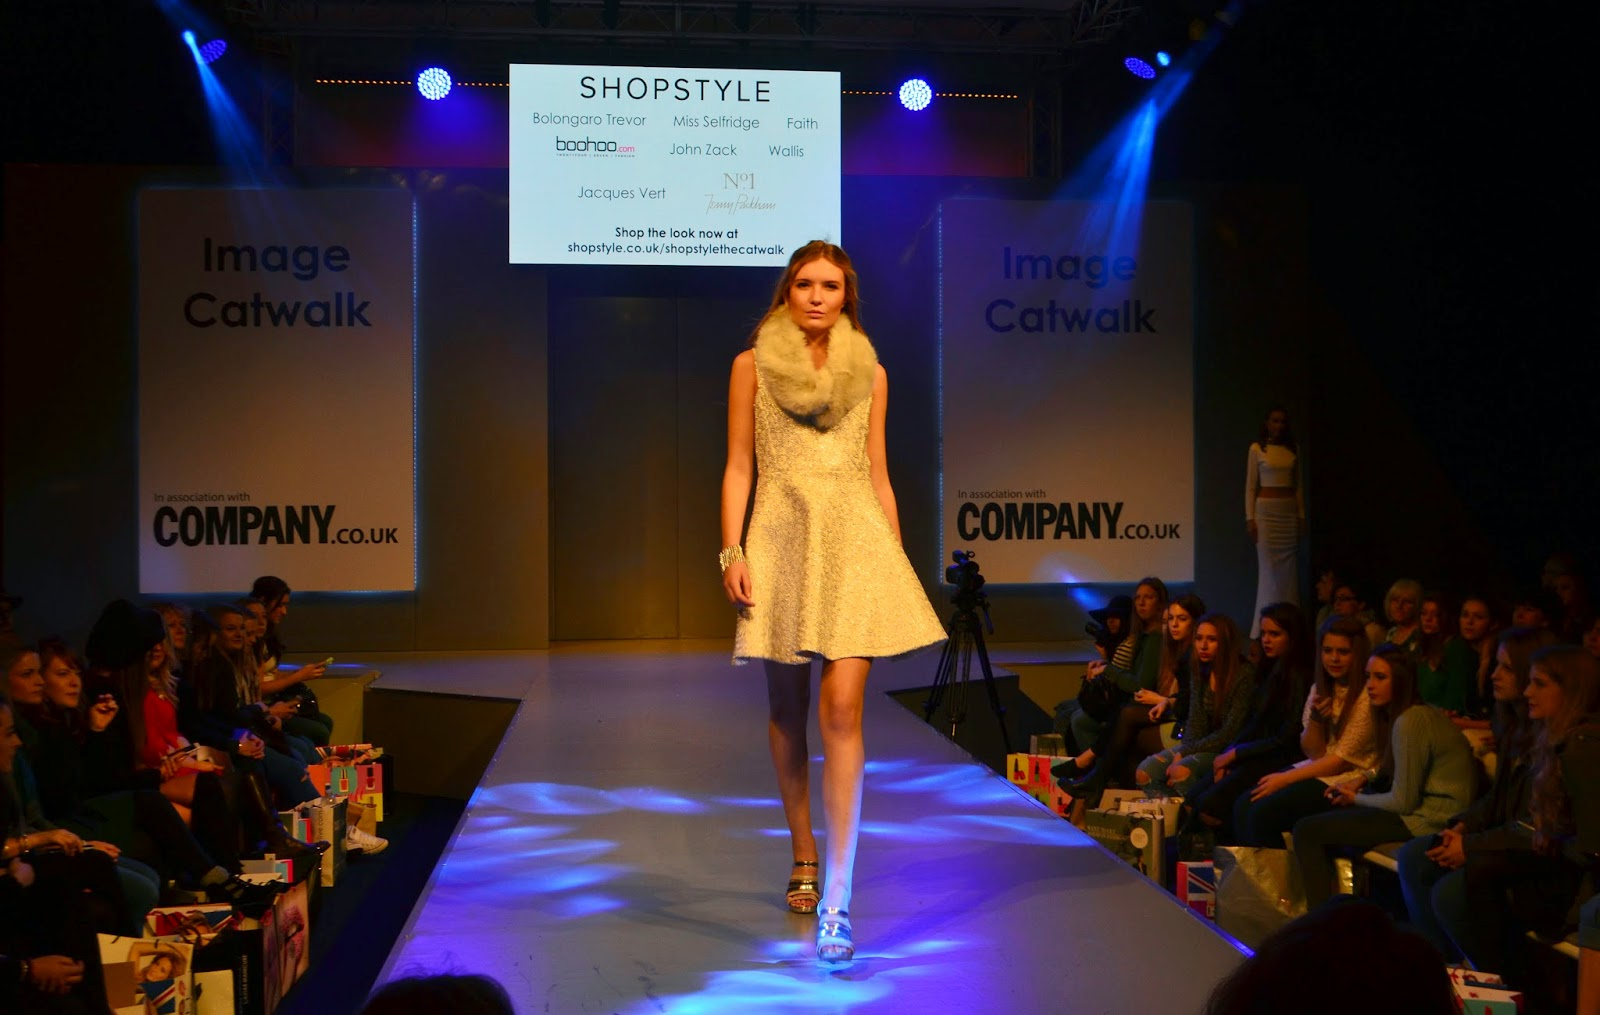 a single model walking down the runway wearing a white dress, silver heels, and a fur snood